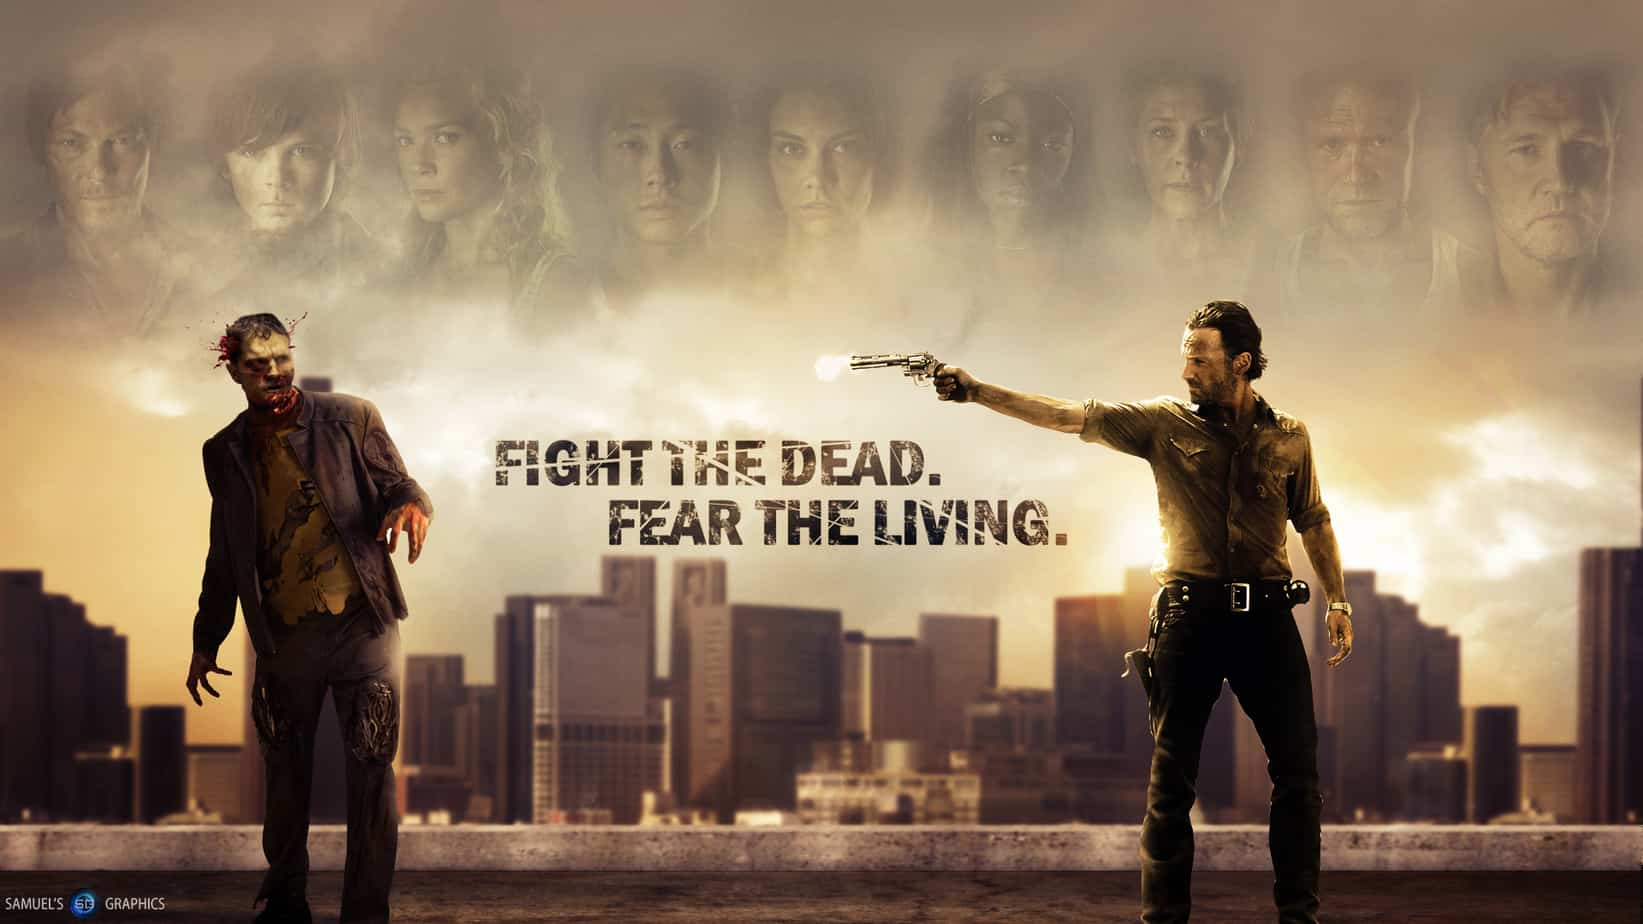 Fight The Dead Fear The Living image from the zombie series The Walking Dead